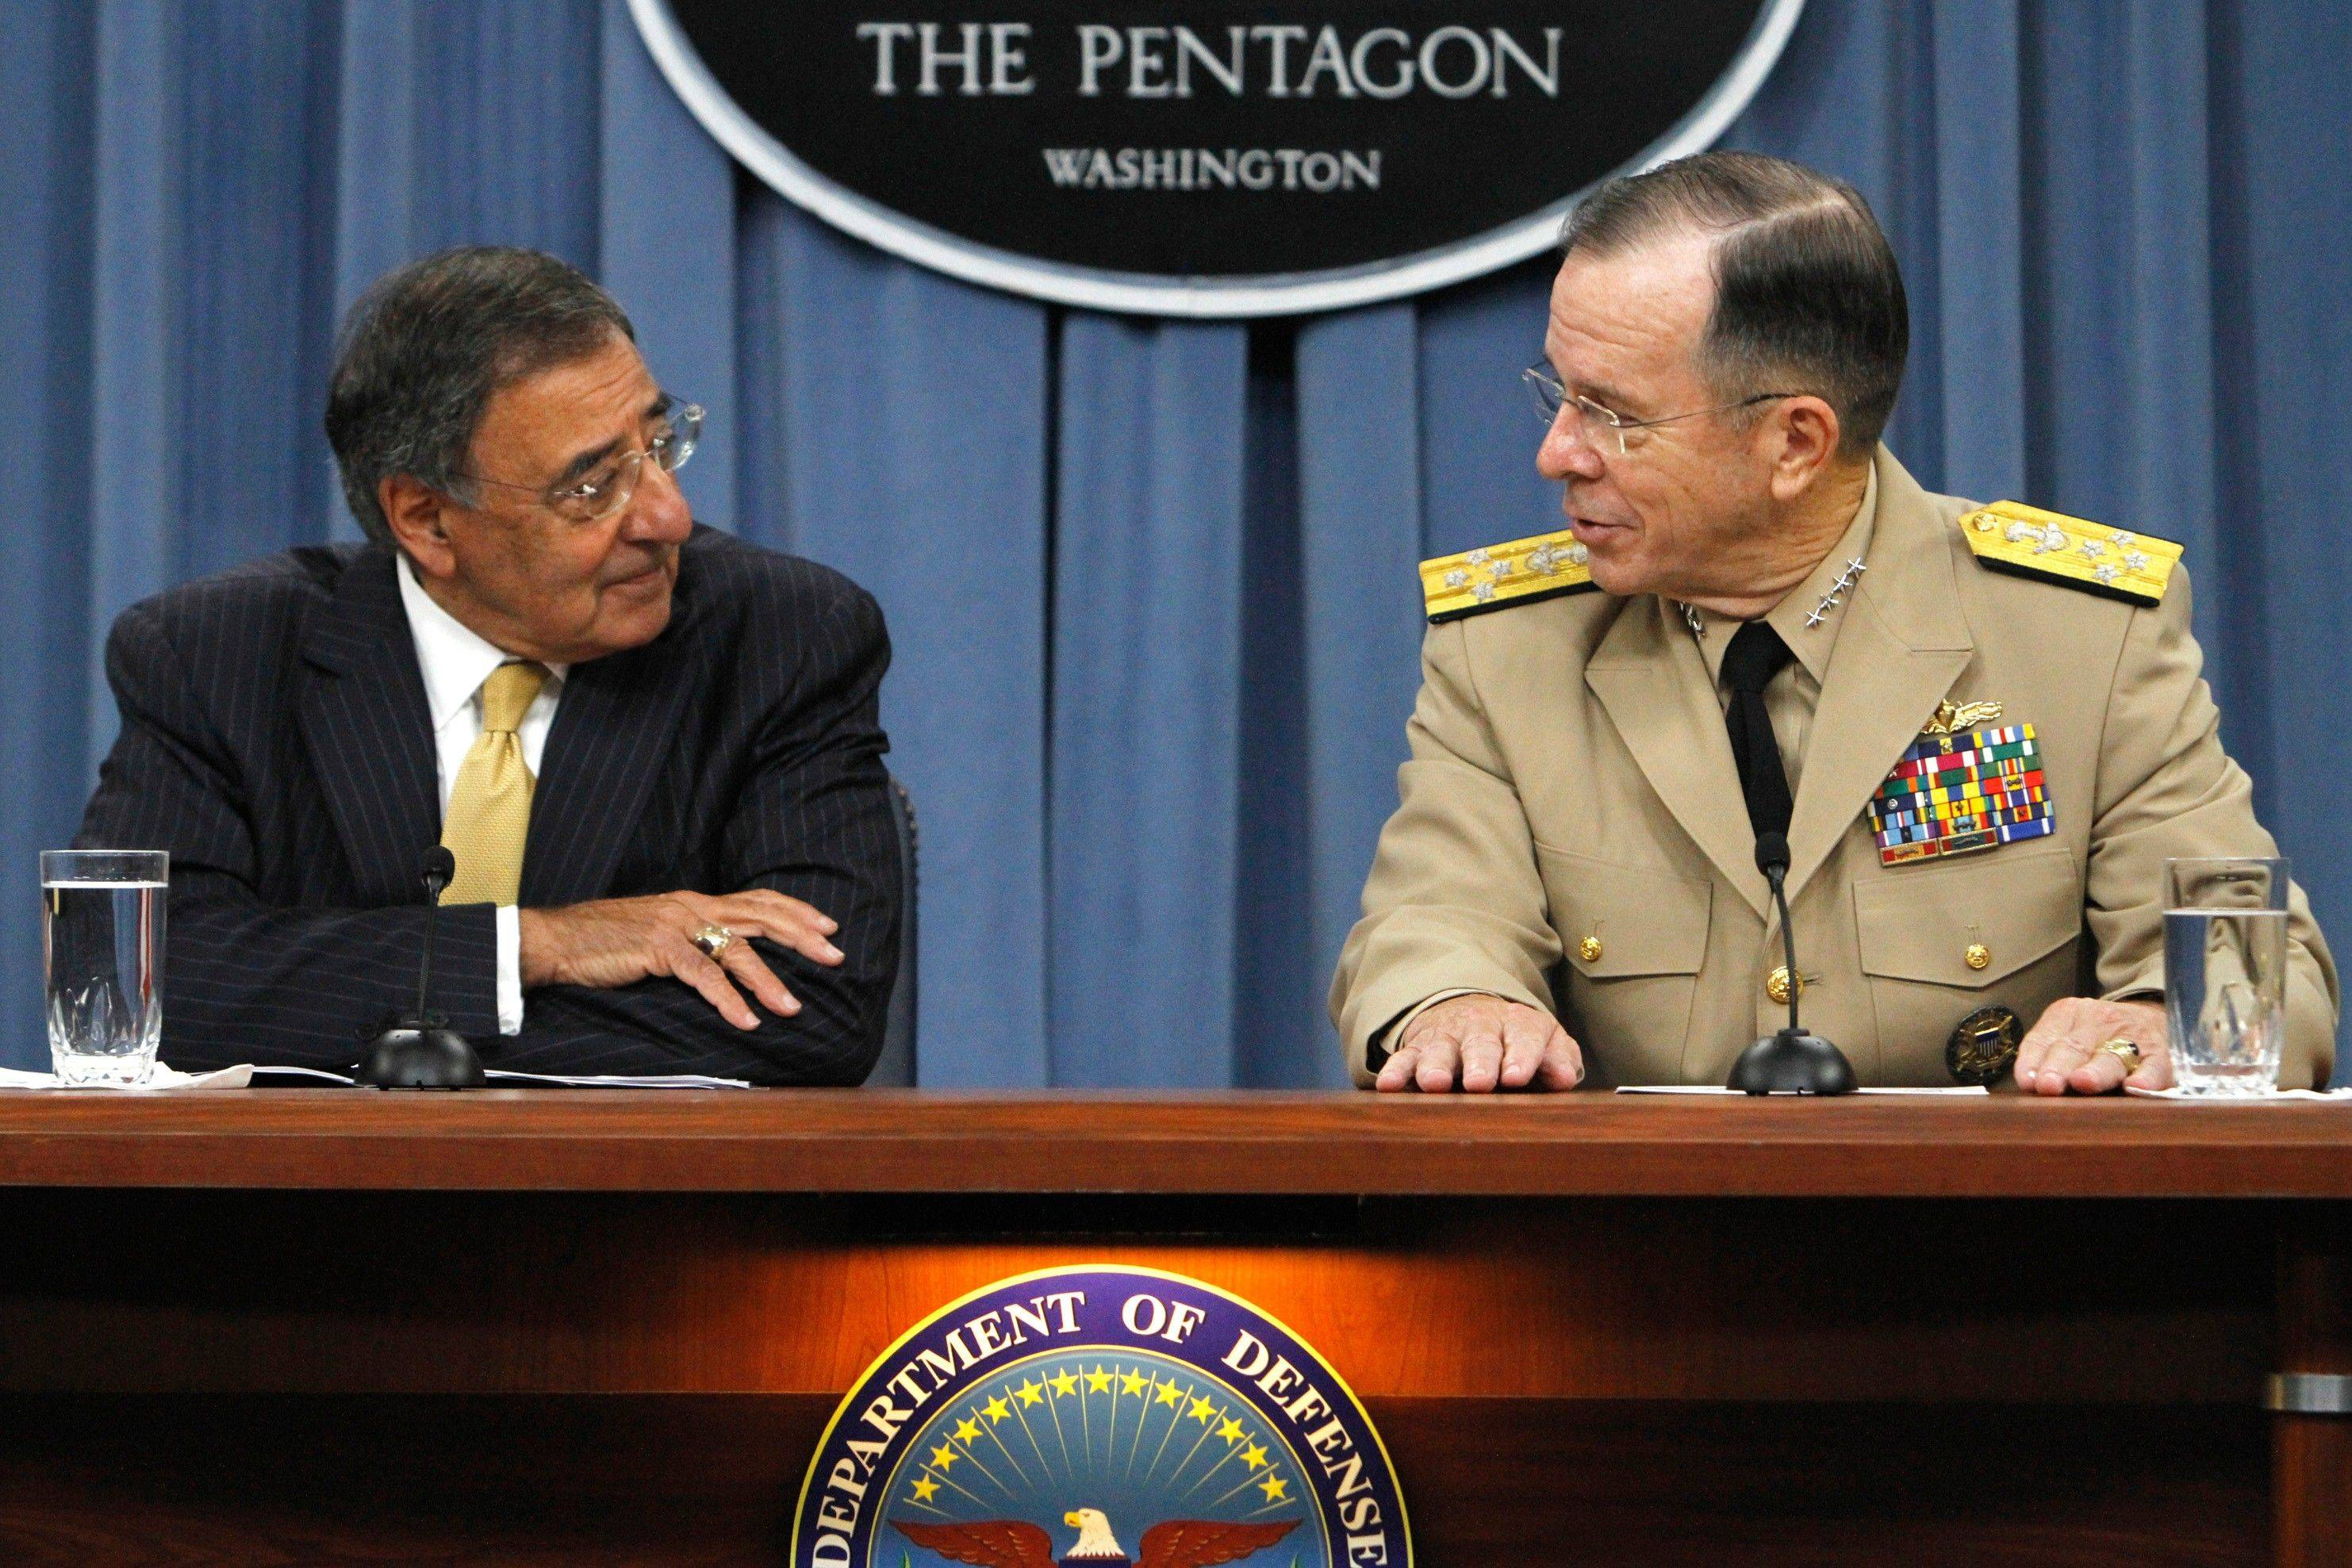 Defense Secretary Leon Panetta, left, and Joint Chiefs Chairman, Adm. Mike Mullen, brief the media Tuesday at the Pentagon in Washington. Panetta said repealing the ban on openly gay service makes this an historic day for the military and the nation.